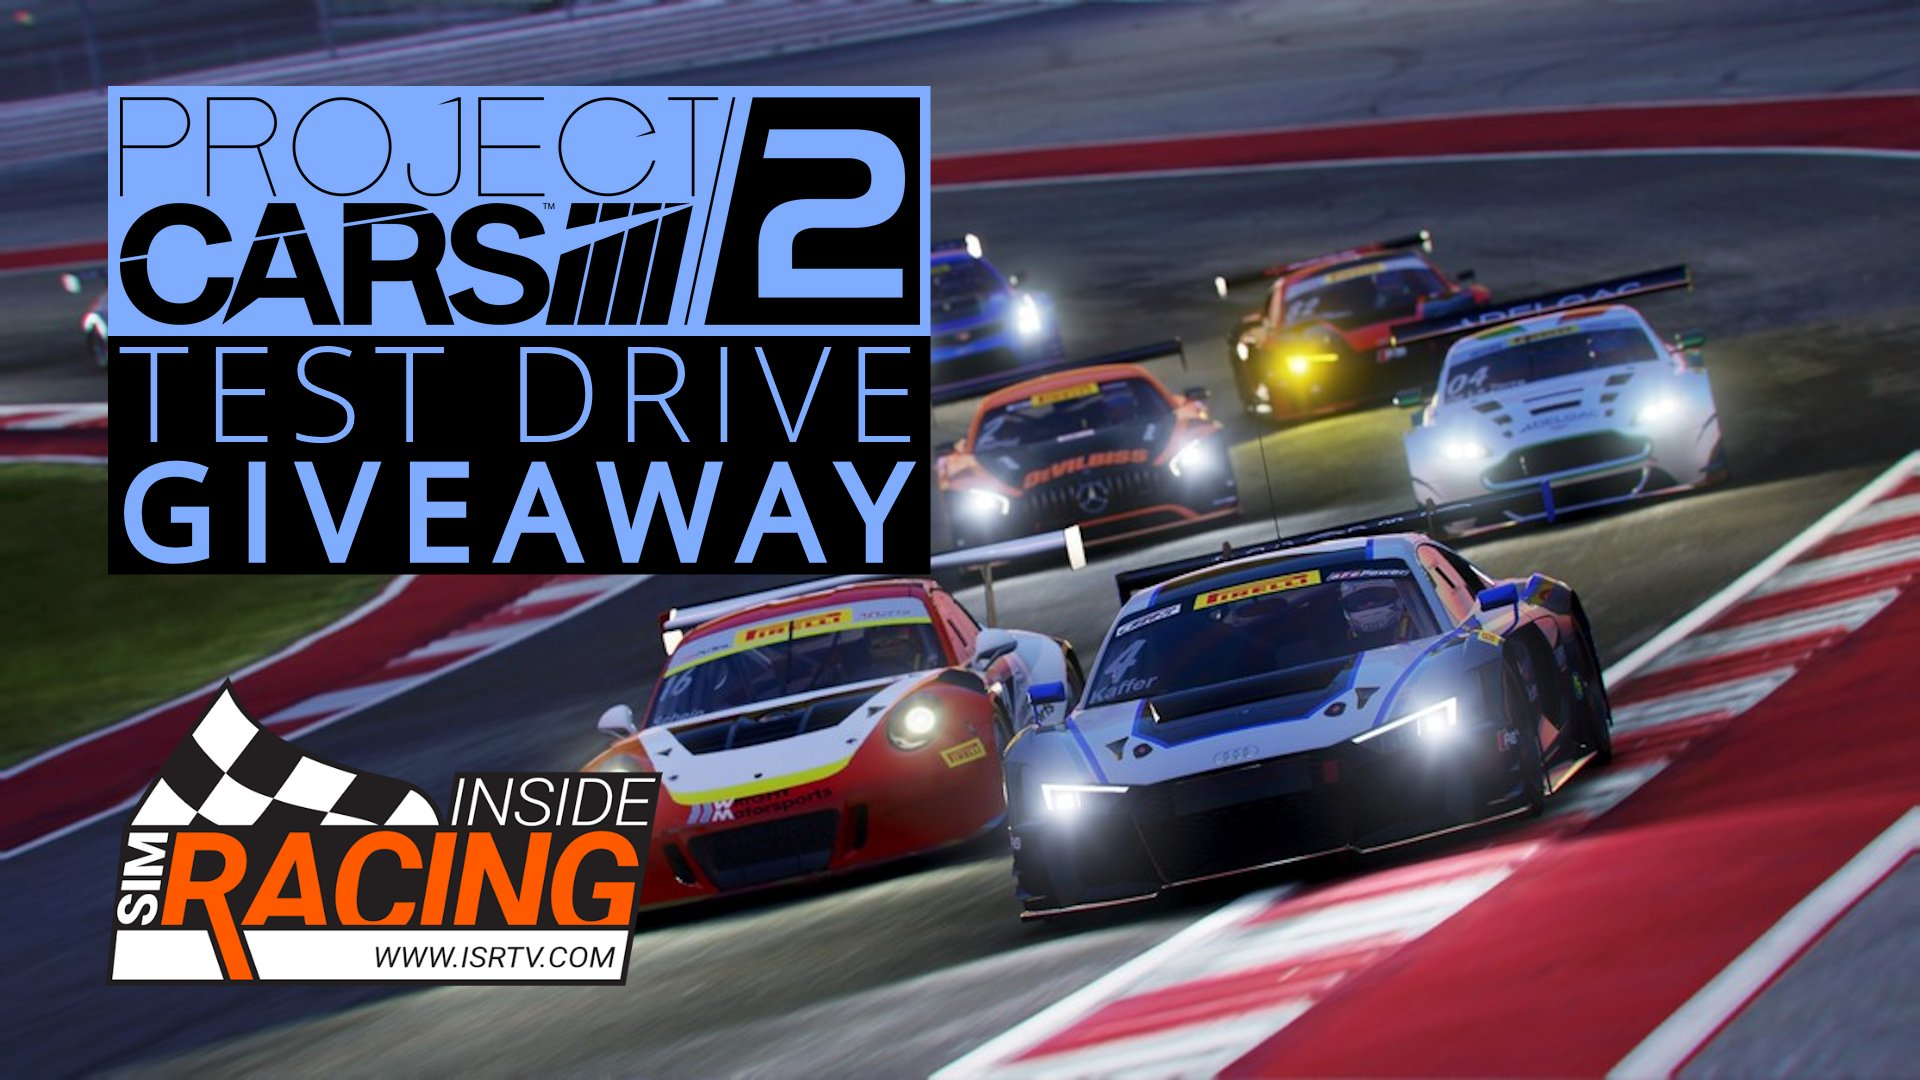 Project Cars 2 Test Drive Giveaway Inside Sim Racing